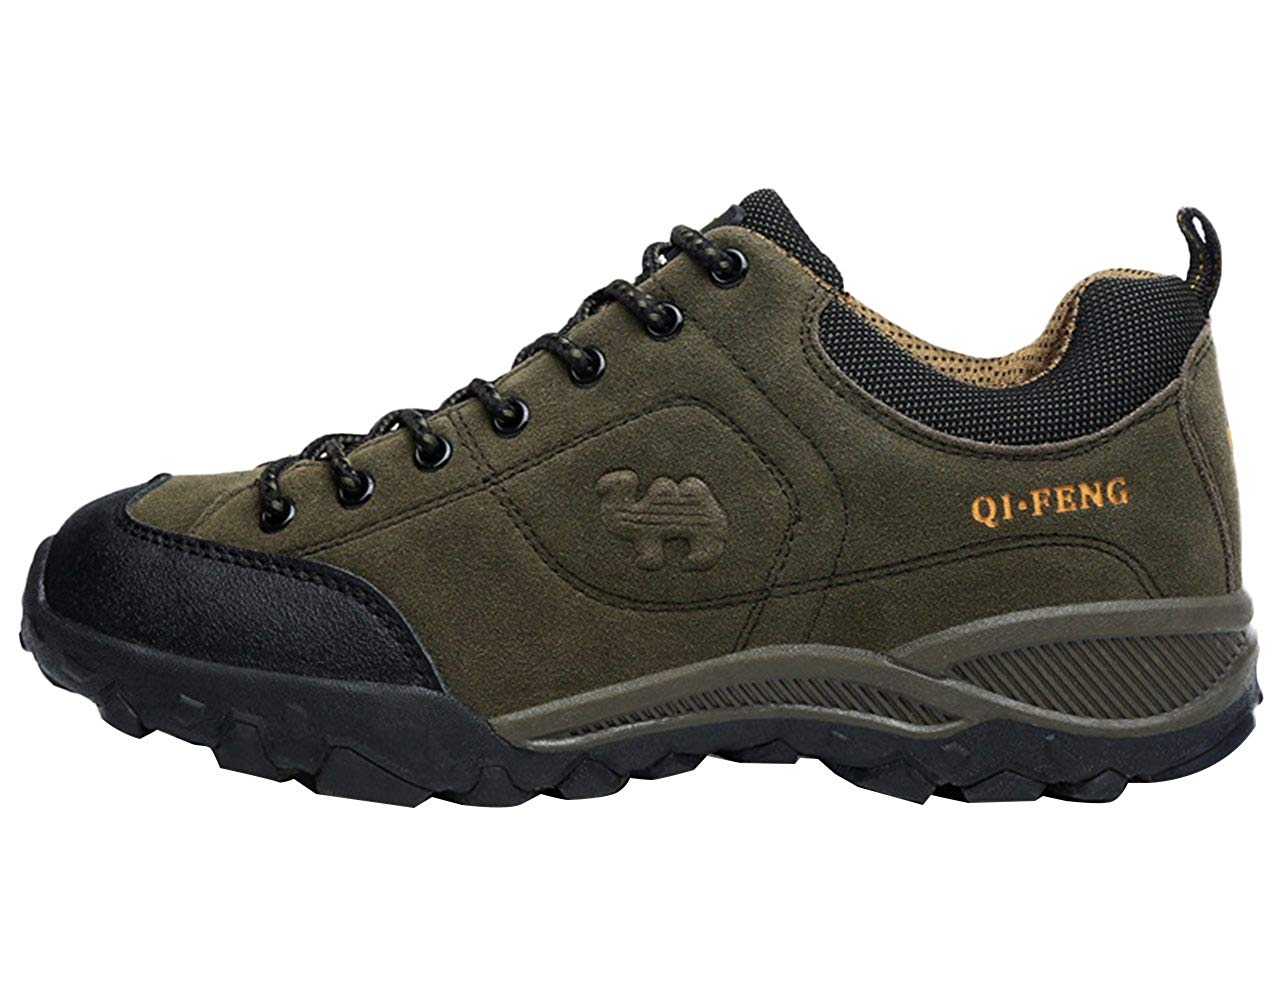 SK Studio Women's Unisex Breathable Hiking Shoes